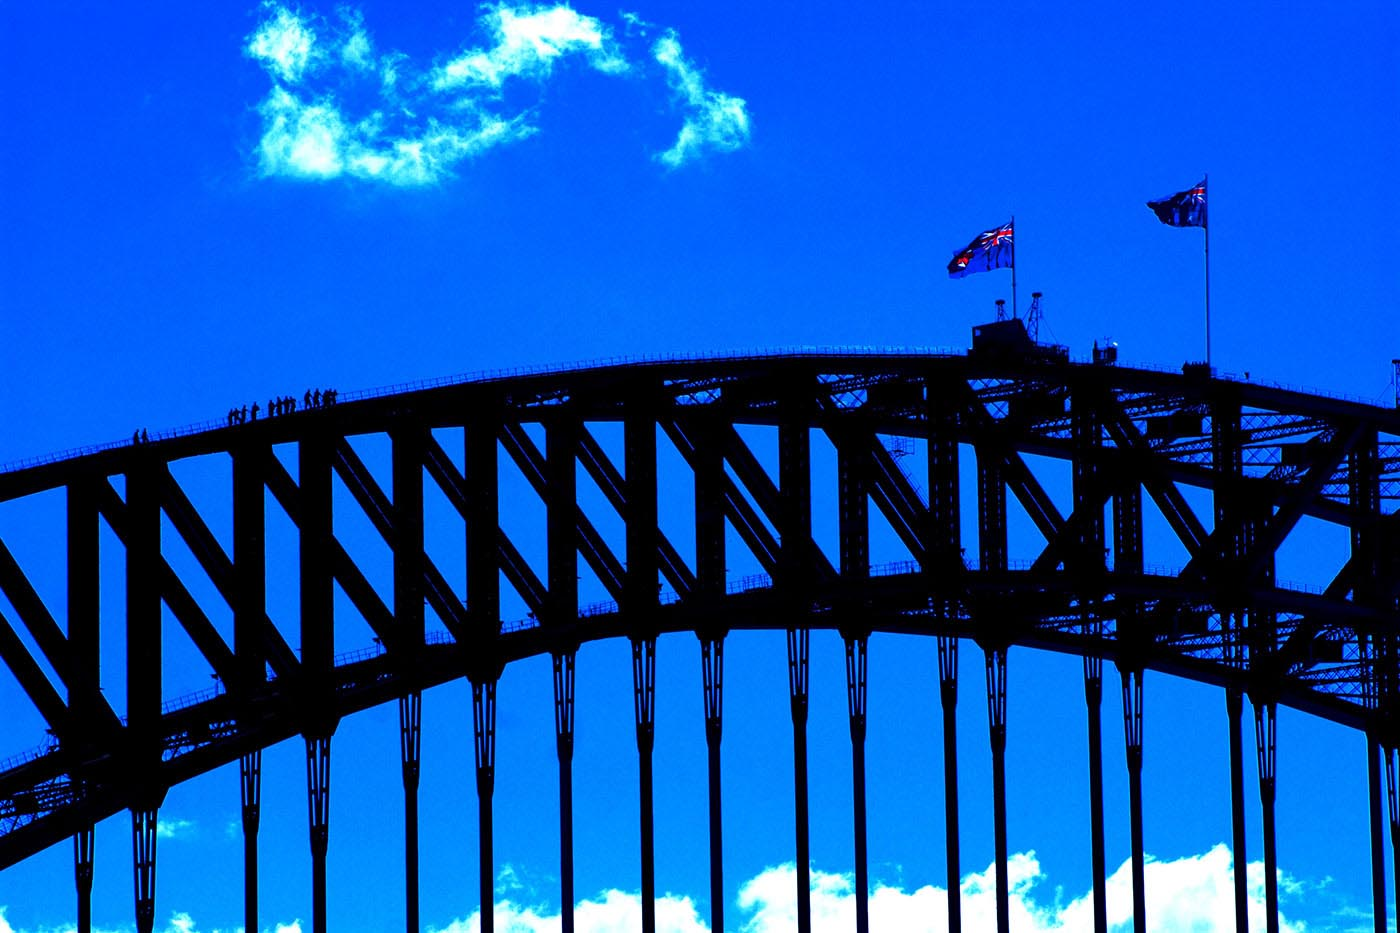 Colour photograph showing the top of the Sydney Harbour Bridge. Two flags fly from the top centre of the arch. A group of climbers, dwarfed by the structure, approach the top of the arch from the left. - click to view larger image